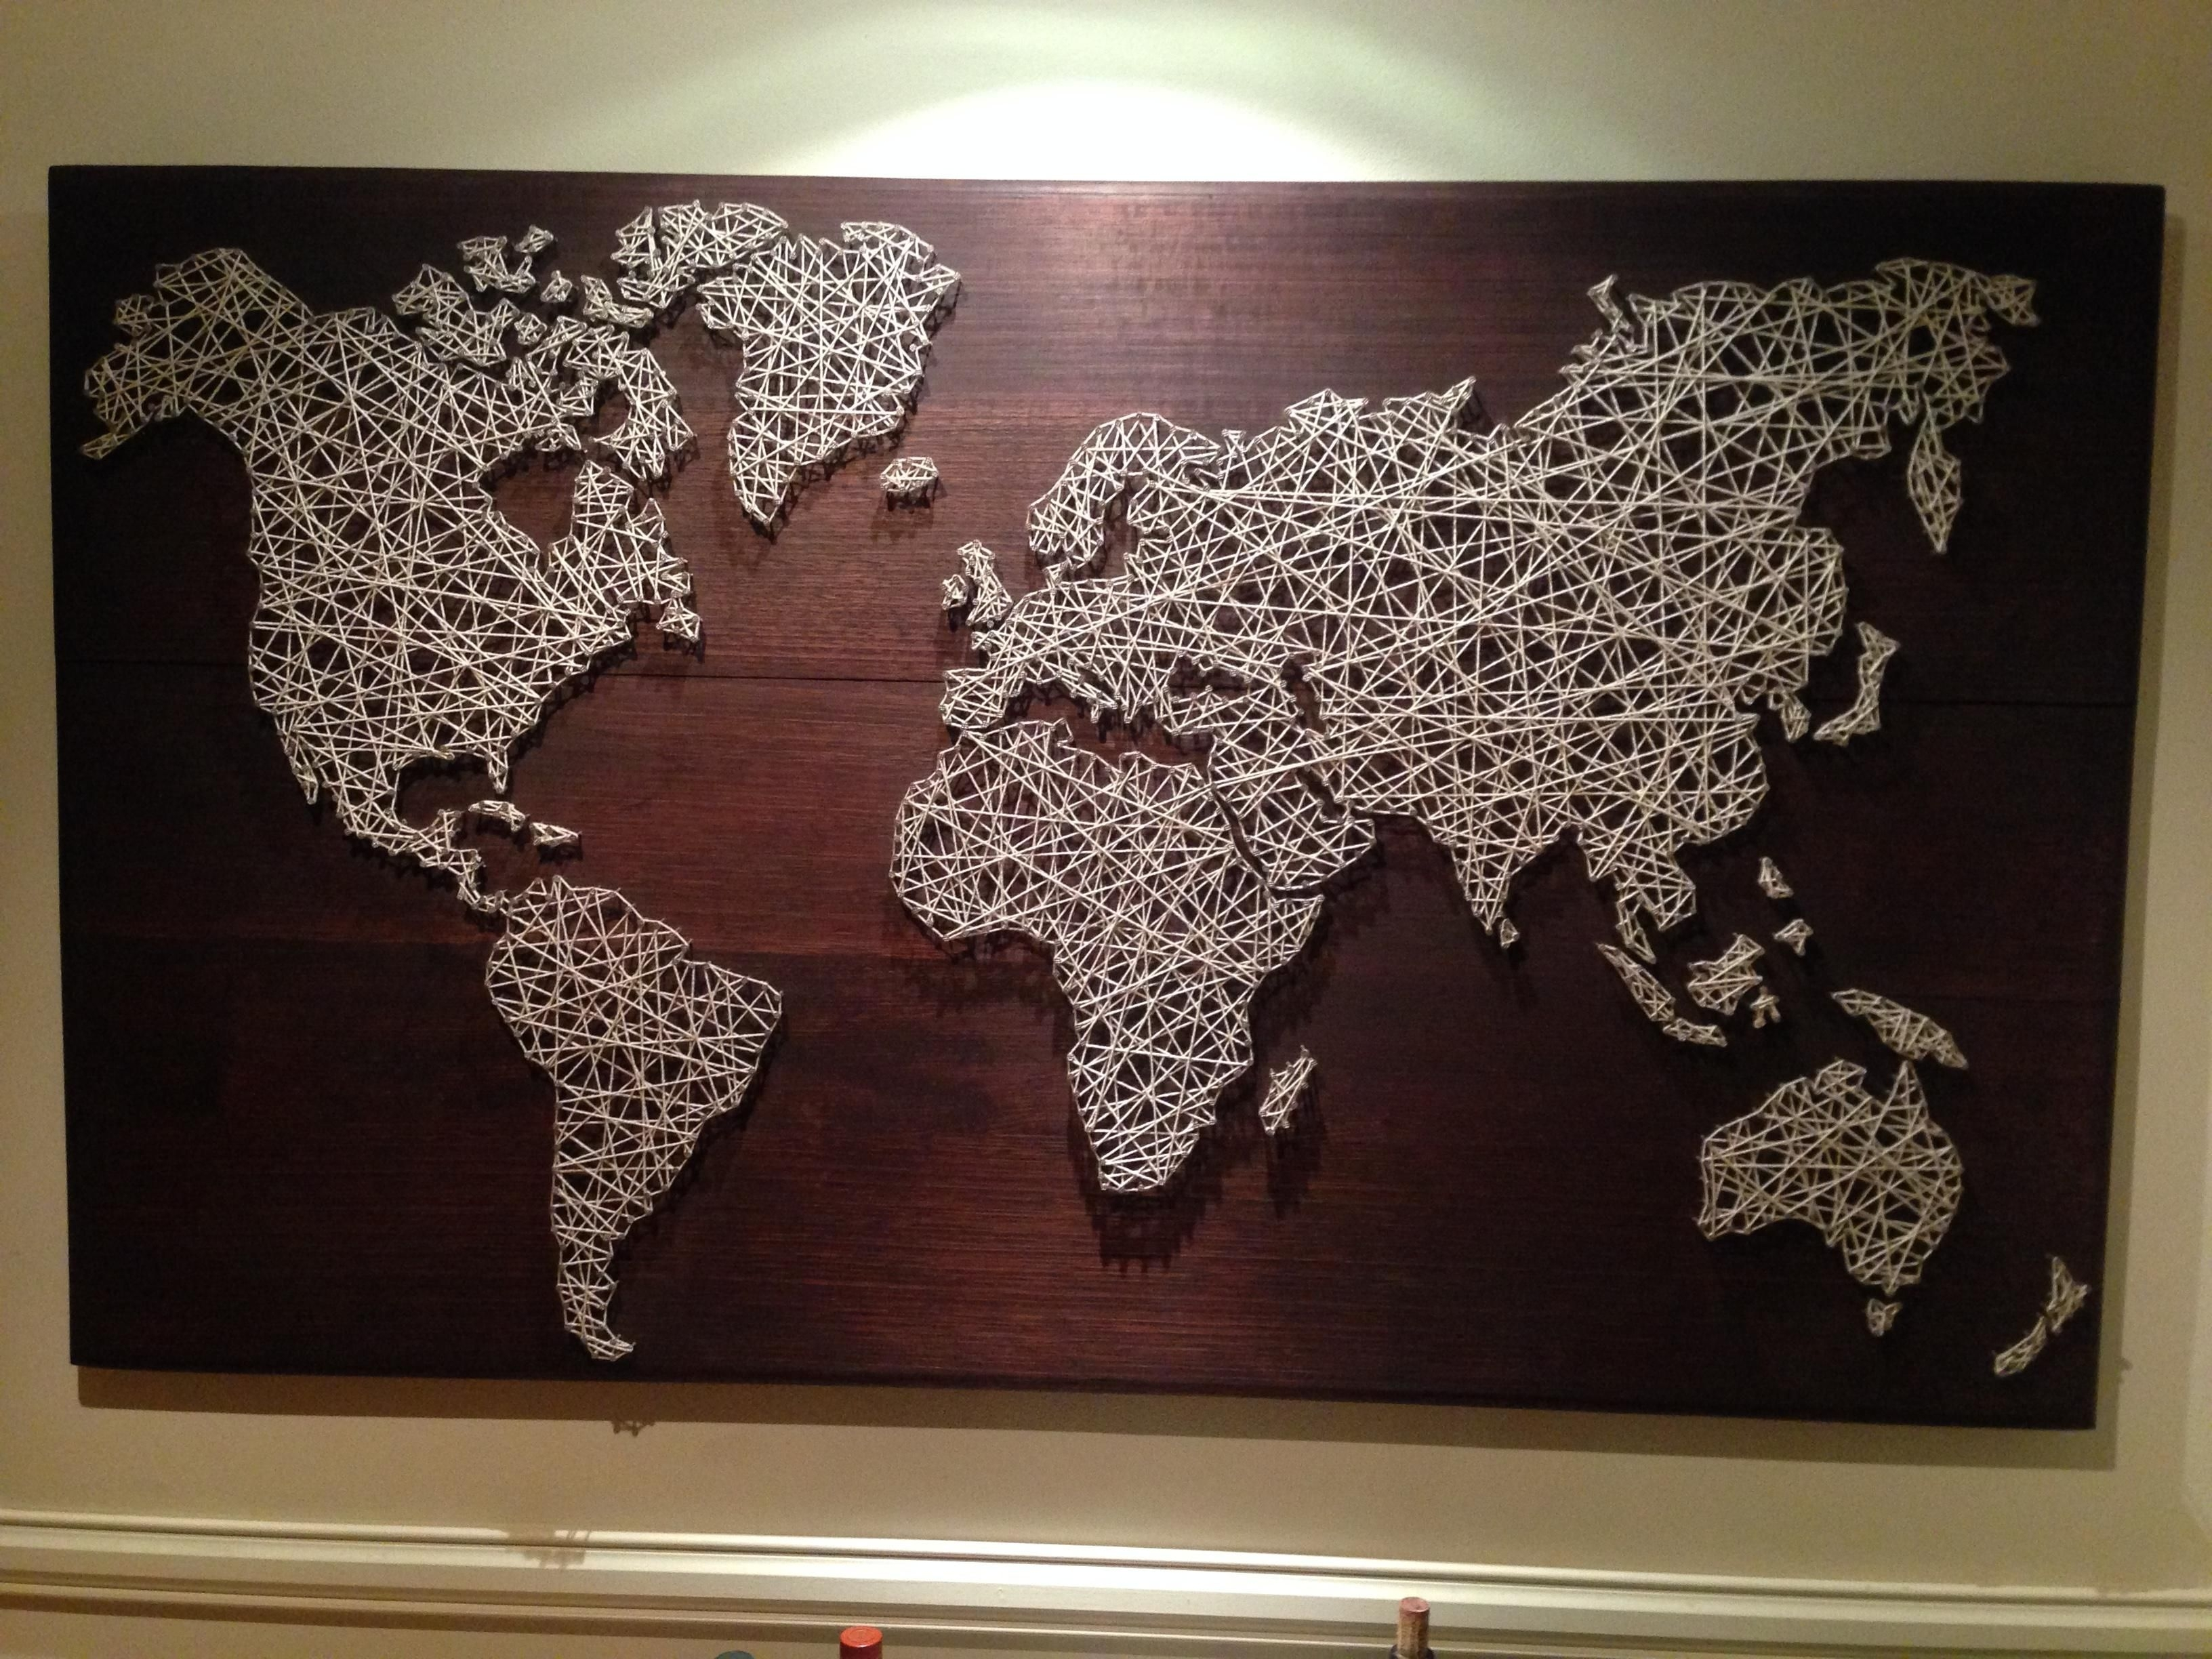 World String Art | String Art, Twine And Cotton Throughout String Map Wall Art (Photo 7 of 20)